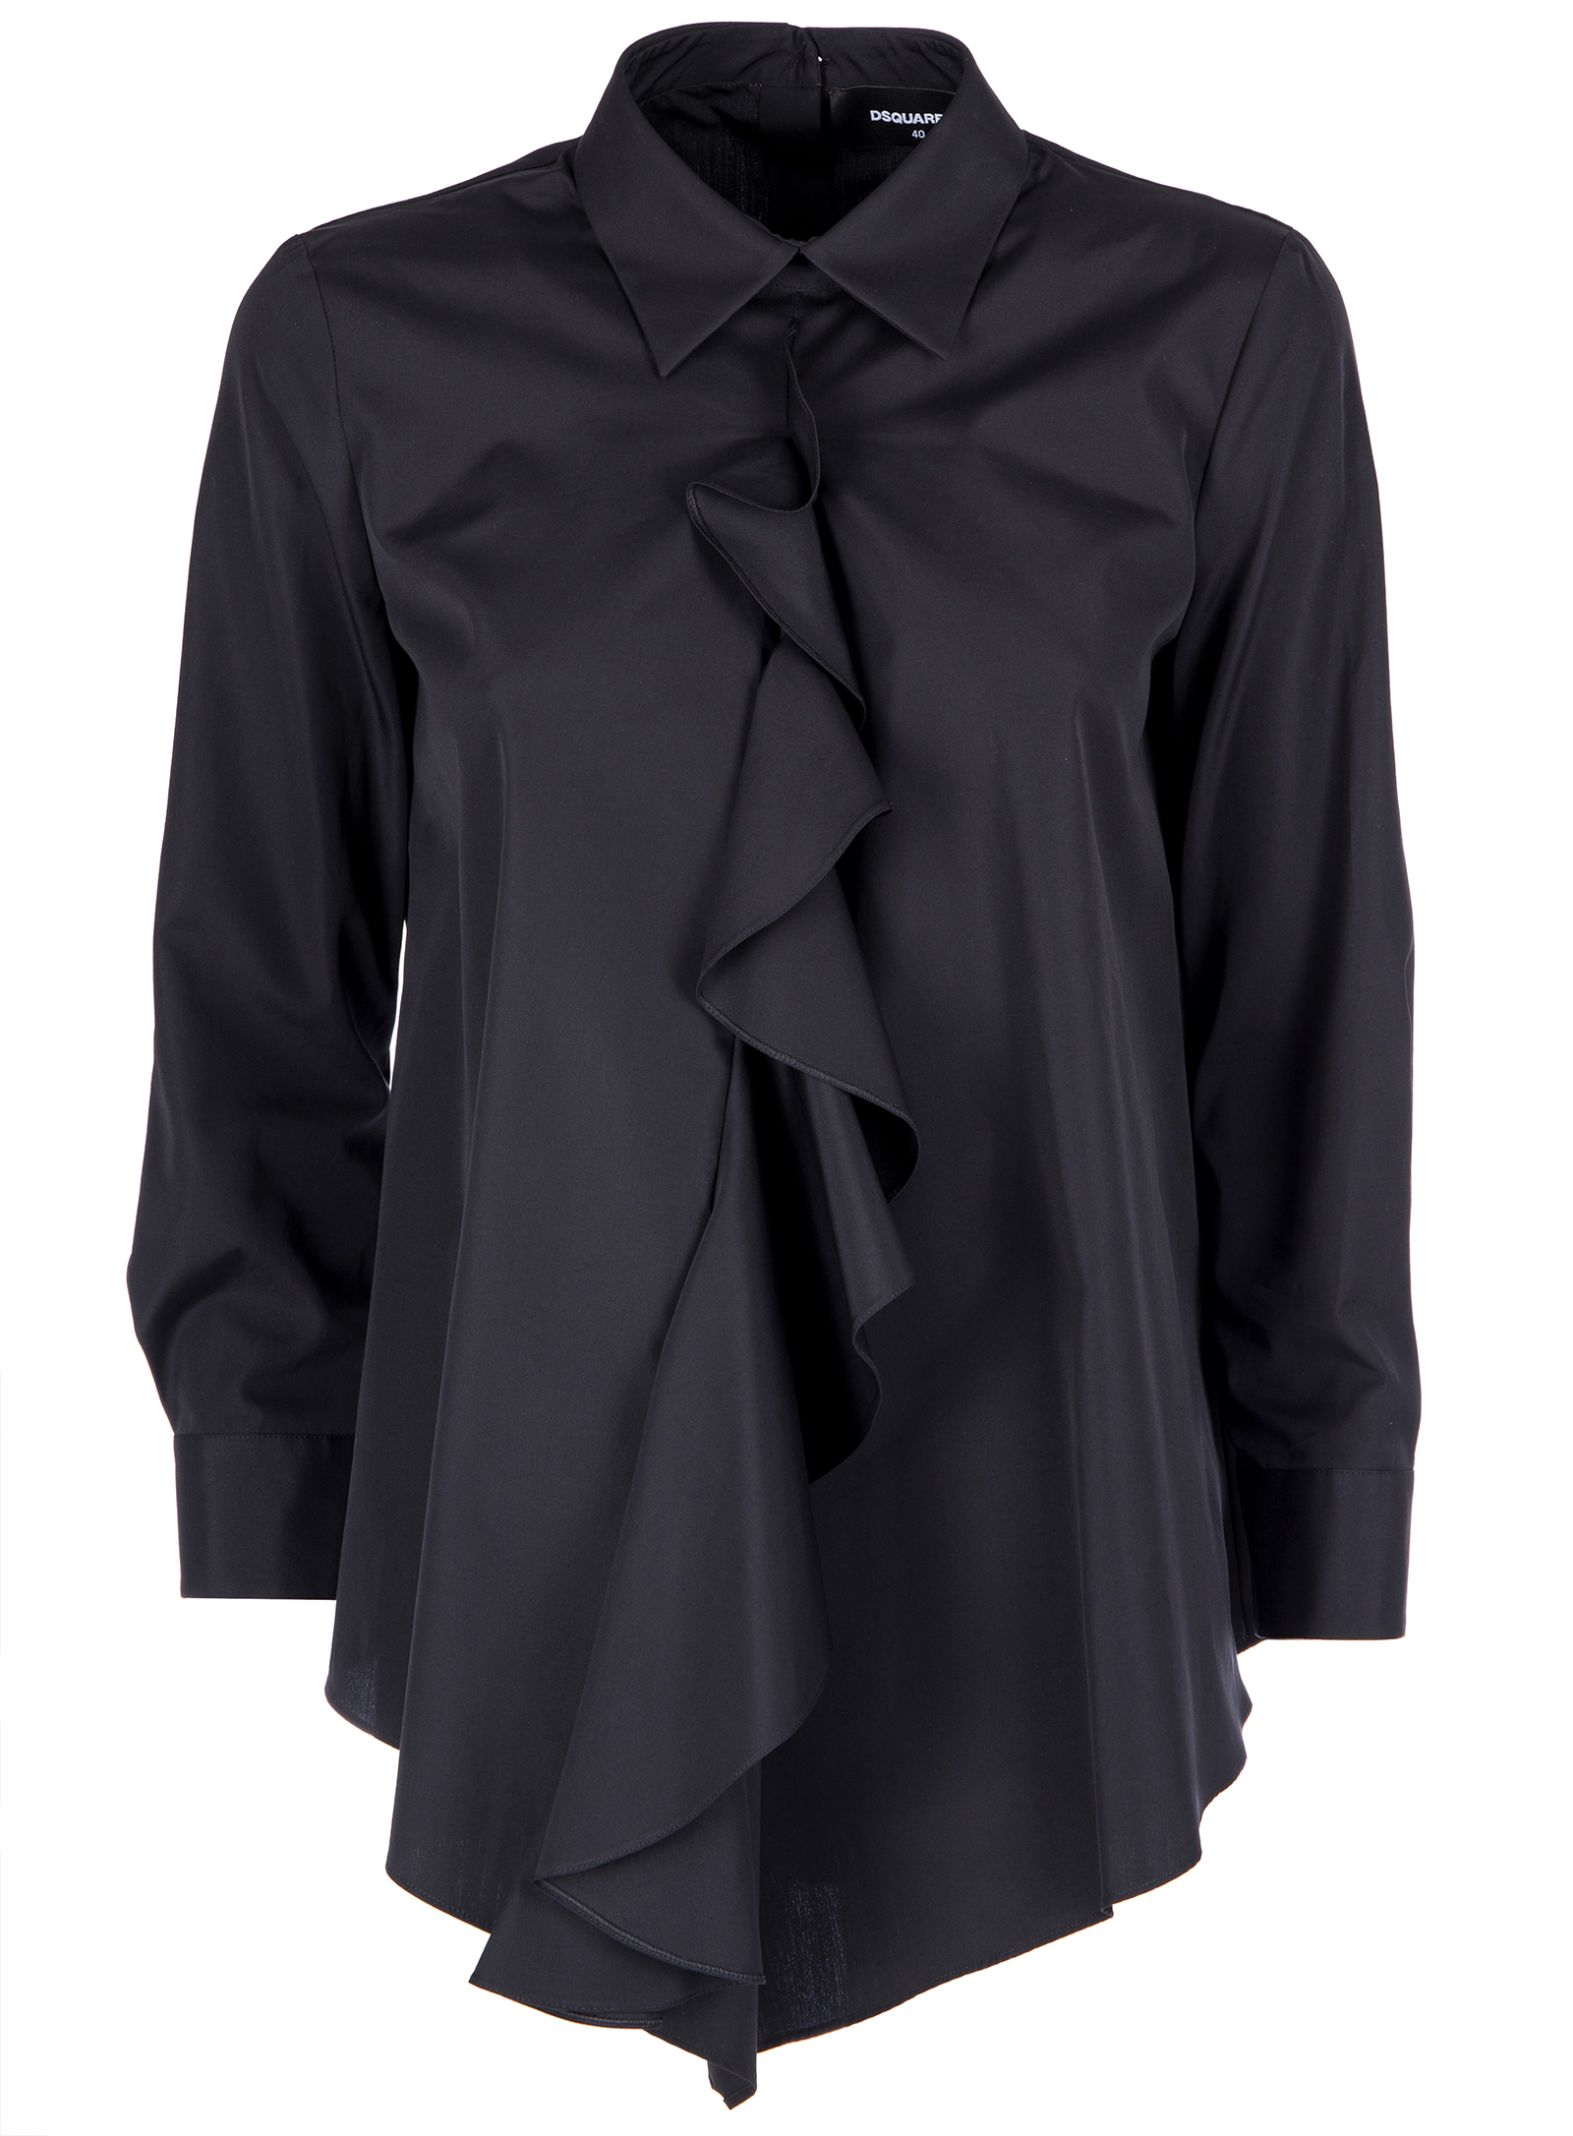 5602bba0ba85e Dsquared2 Classic Ruffle Shirt In Black - Black ...